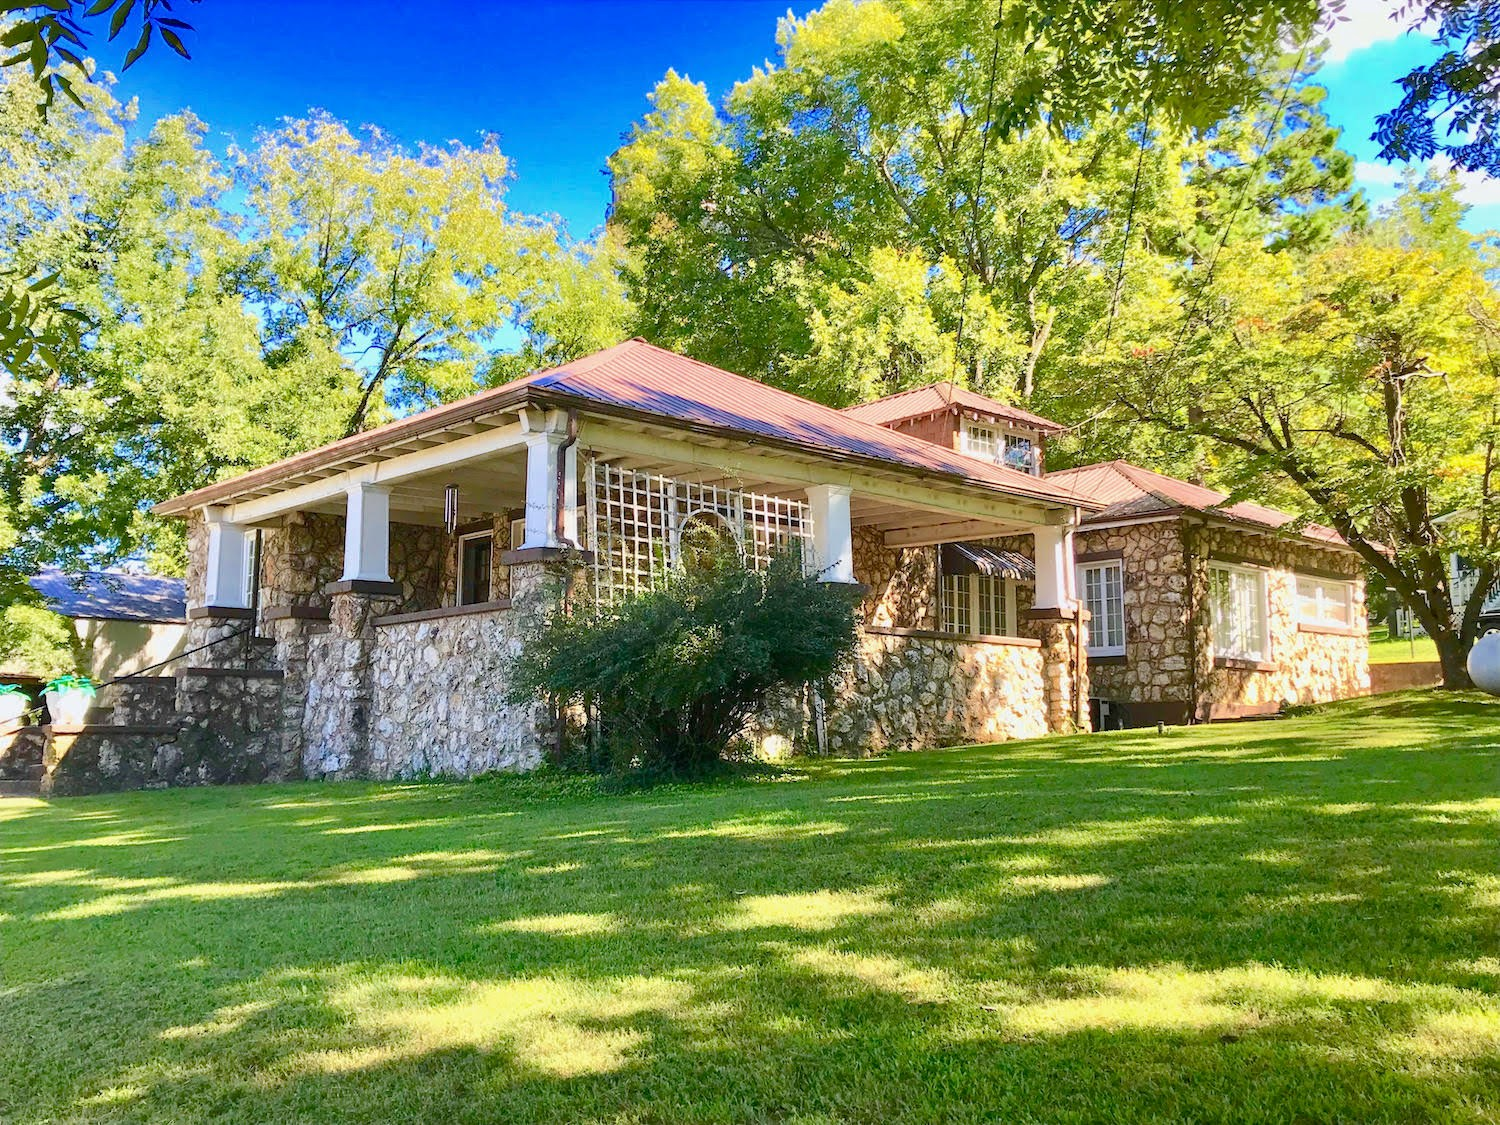 Native Stone Home for Sale in the Ozarks